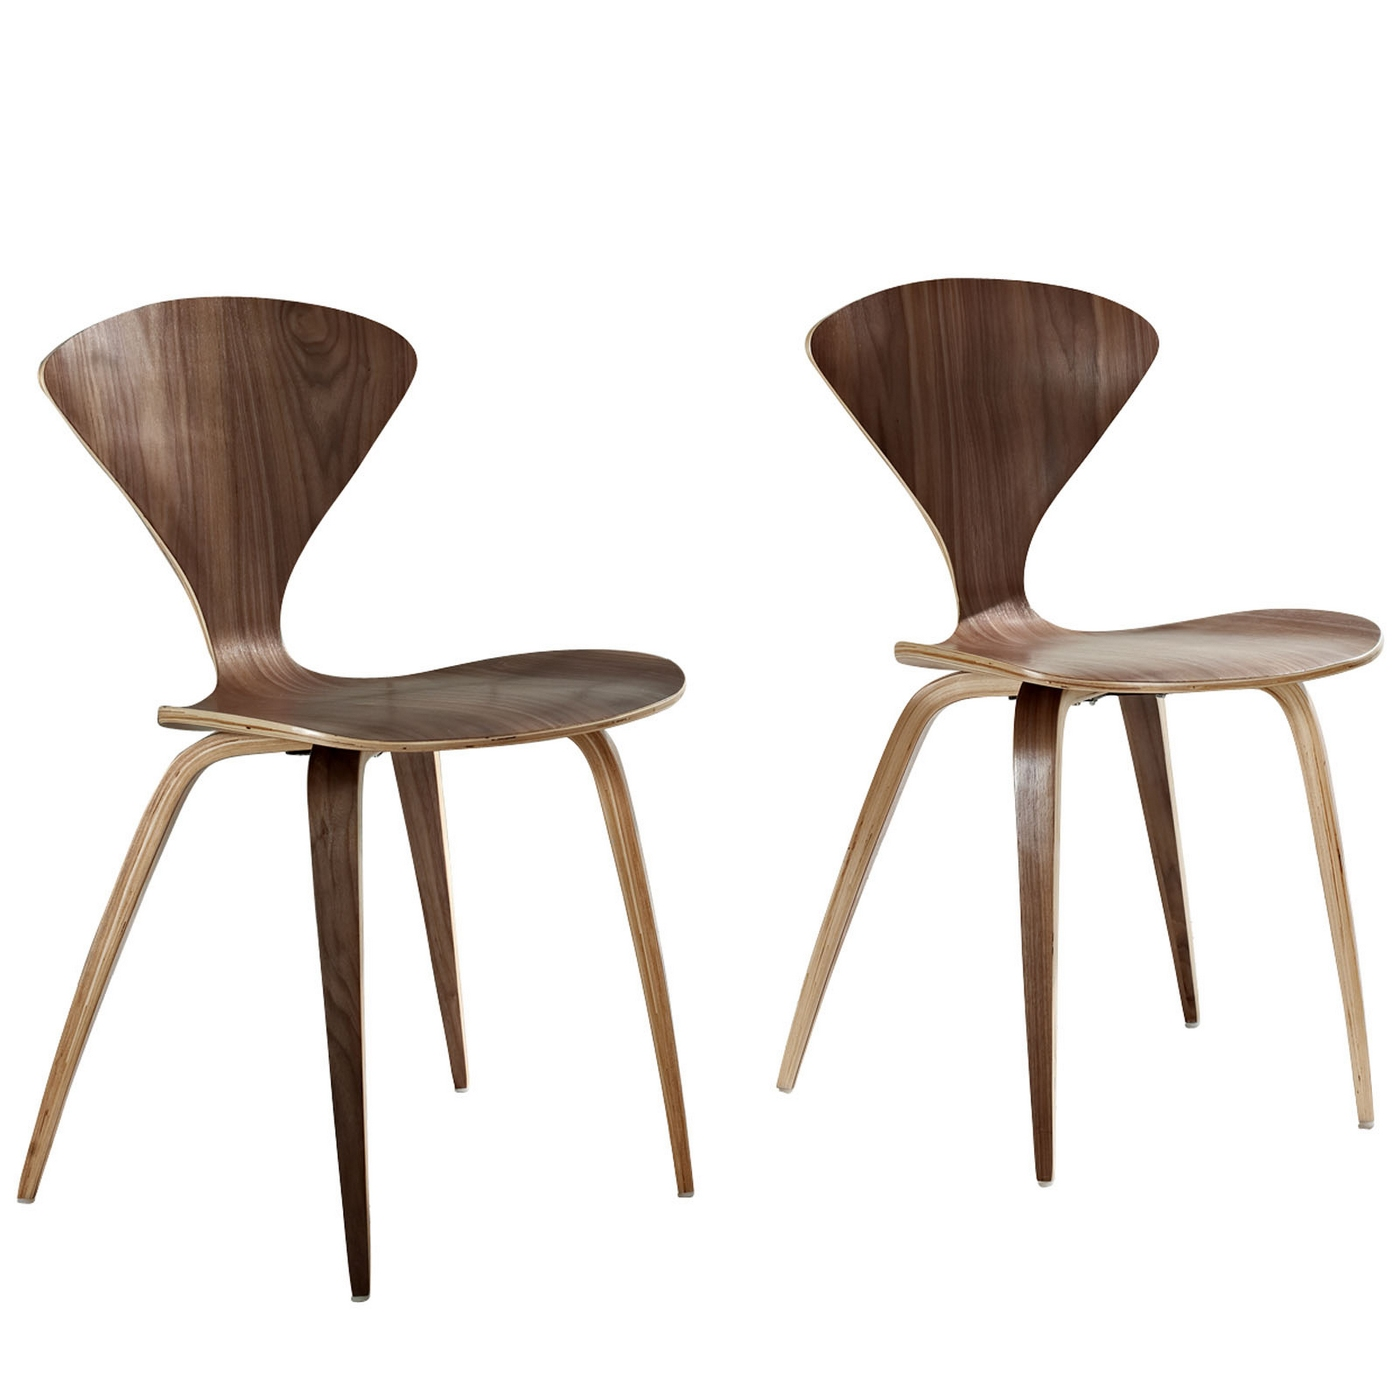 dark walnut dining chairs baby chair clips onto table vortex modern wood panel with lacquered